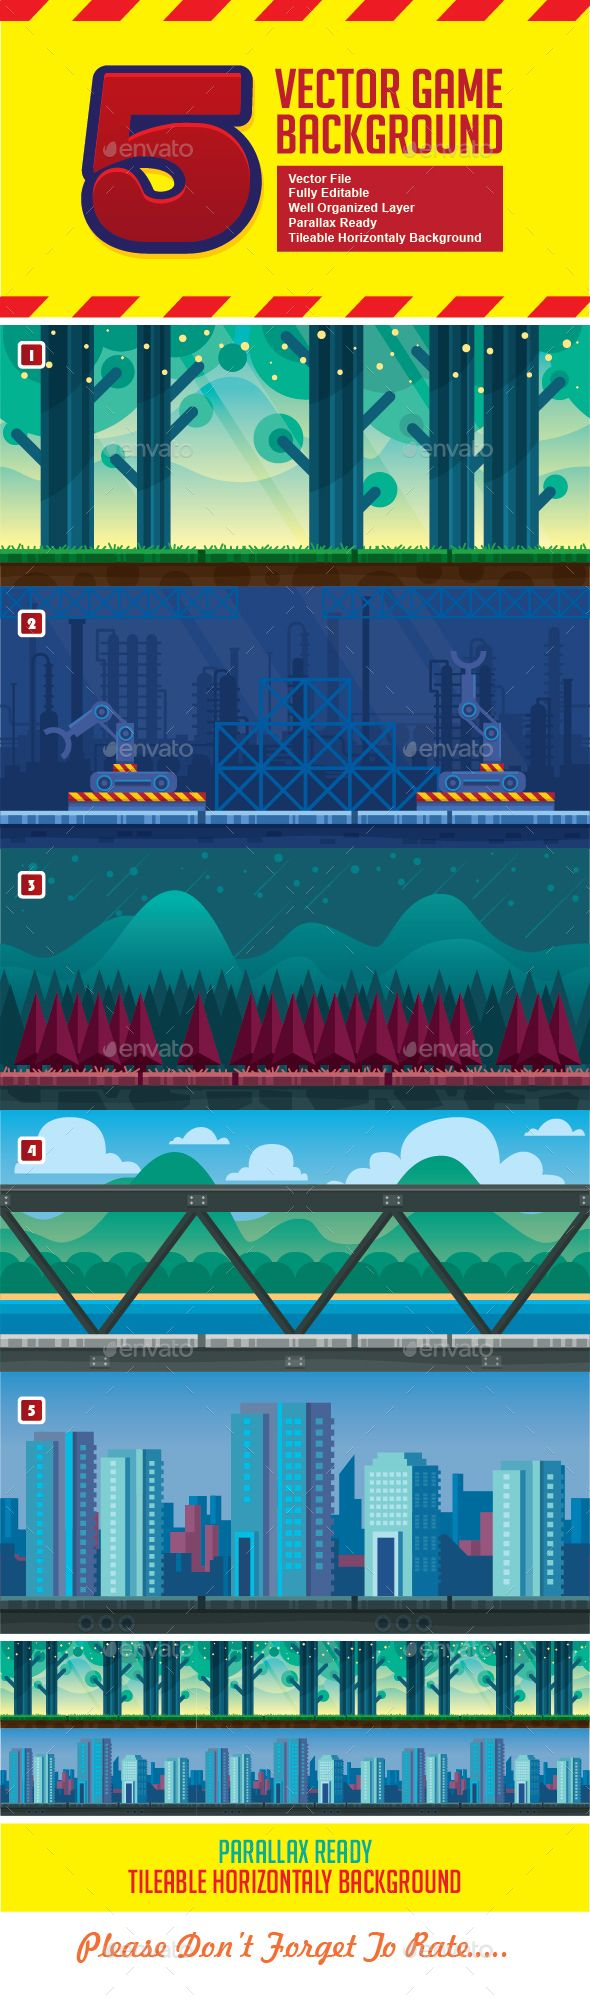 Vector Endless Game Backgrounds